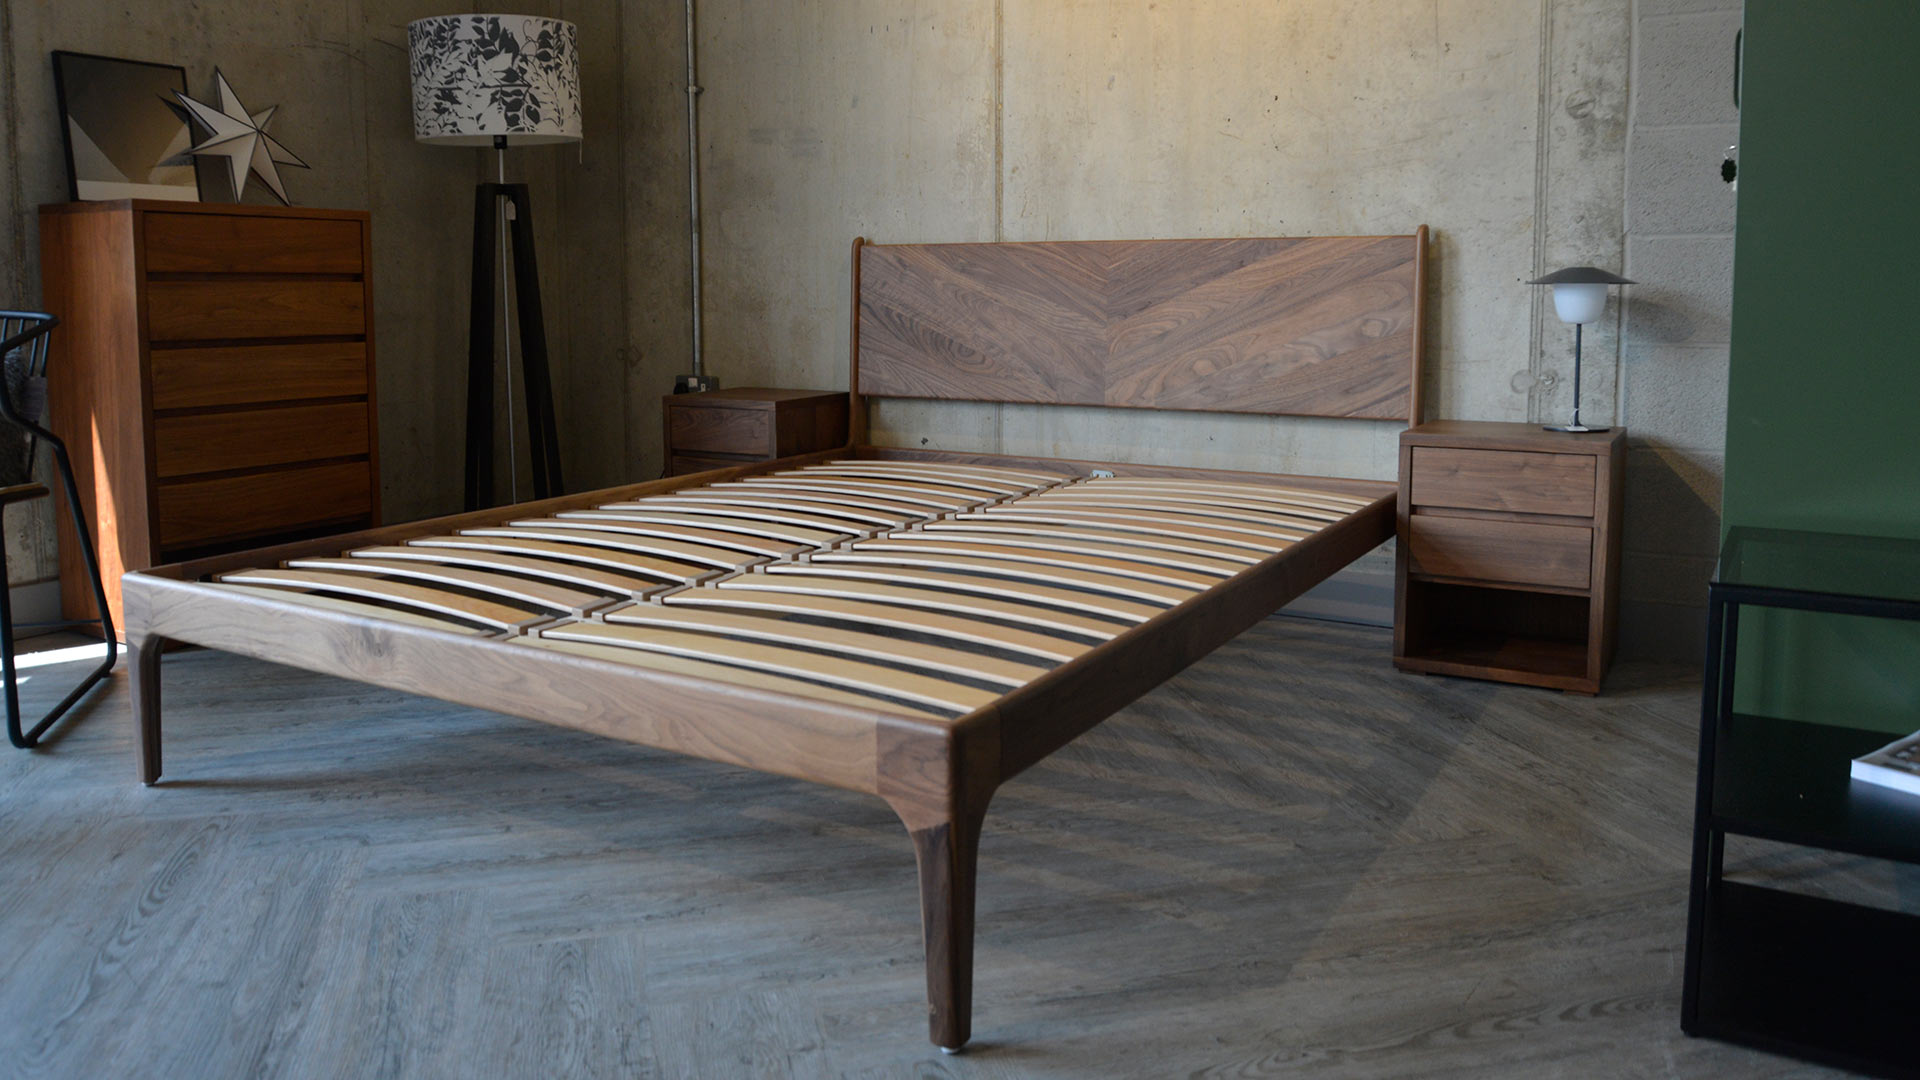 A view of the Walnut retro Hoxton bed frame without mattress and showing the sprung beech slats.